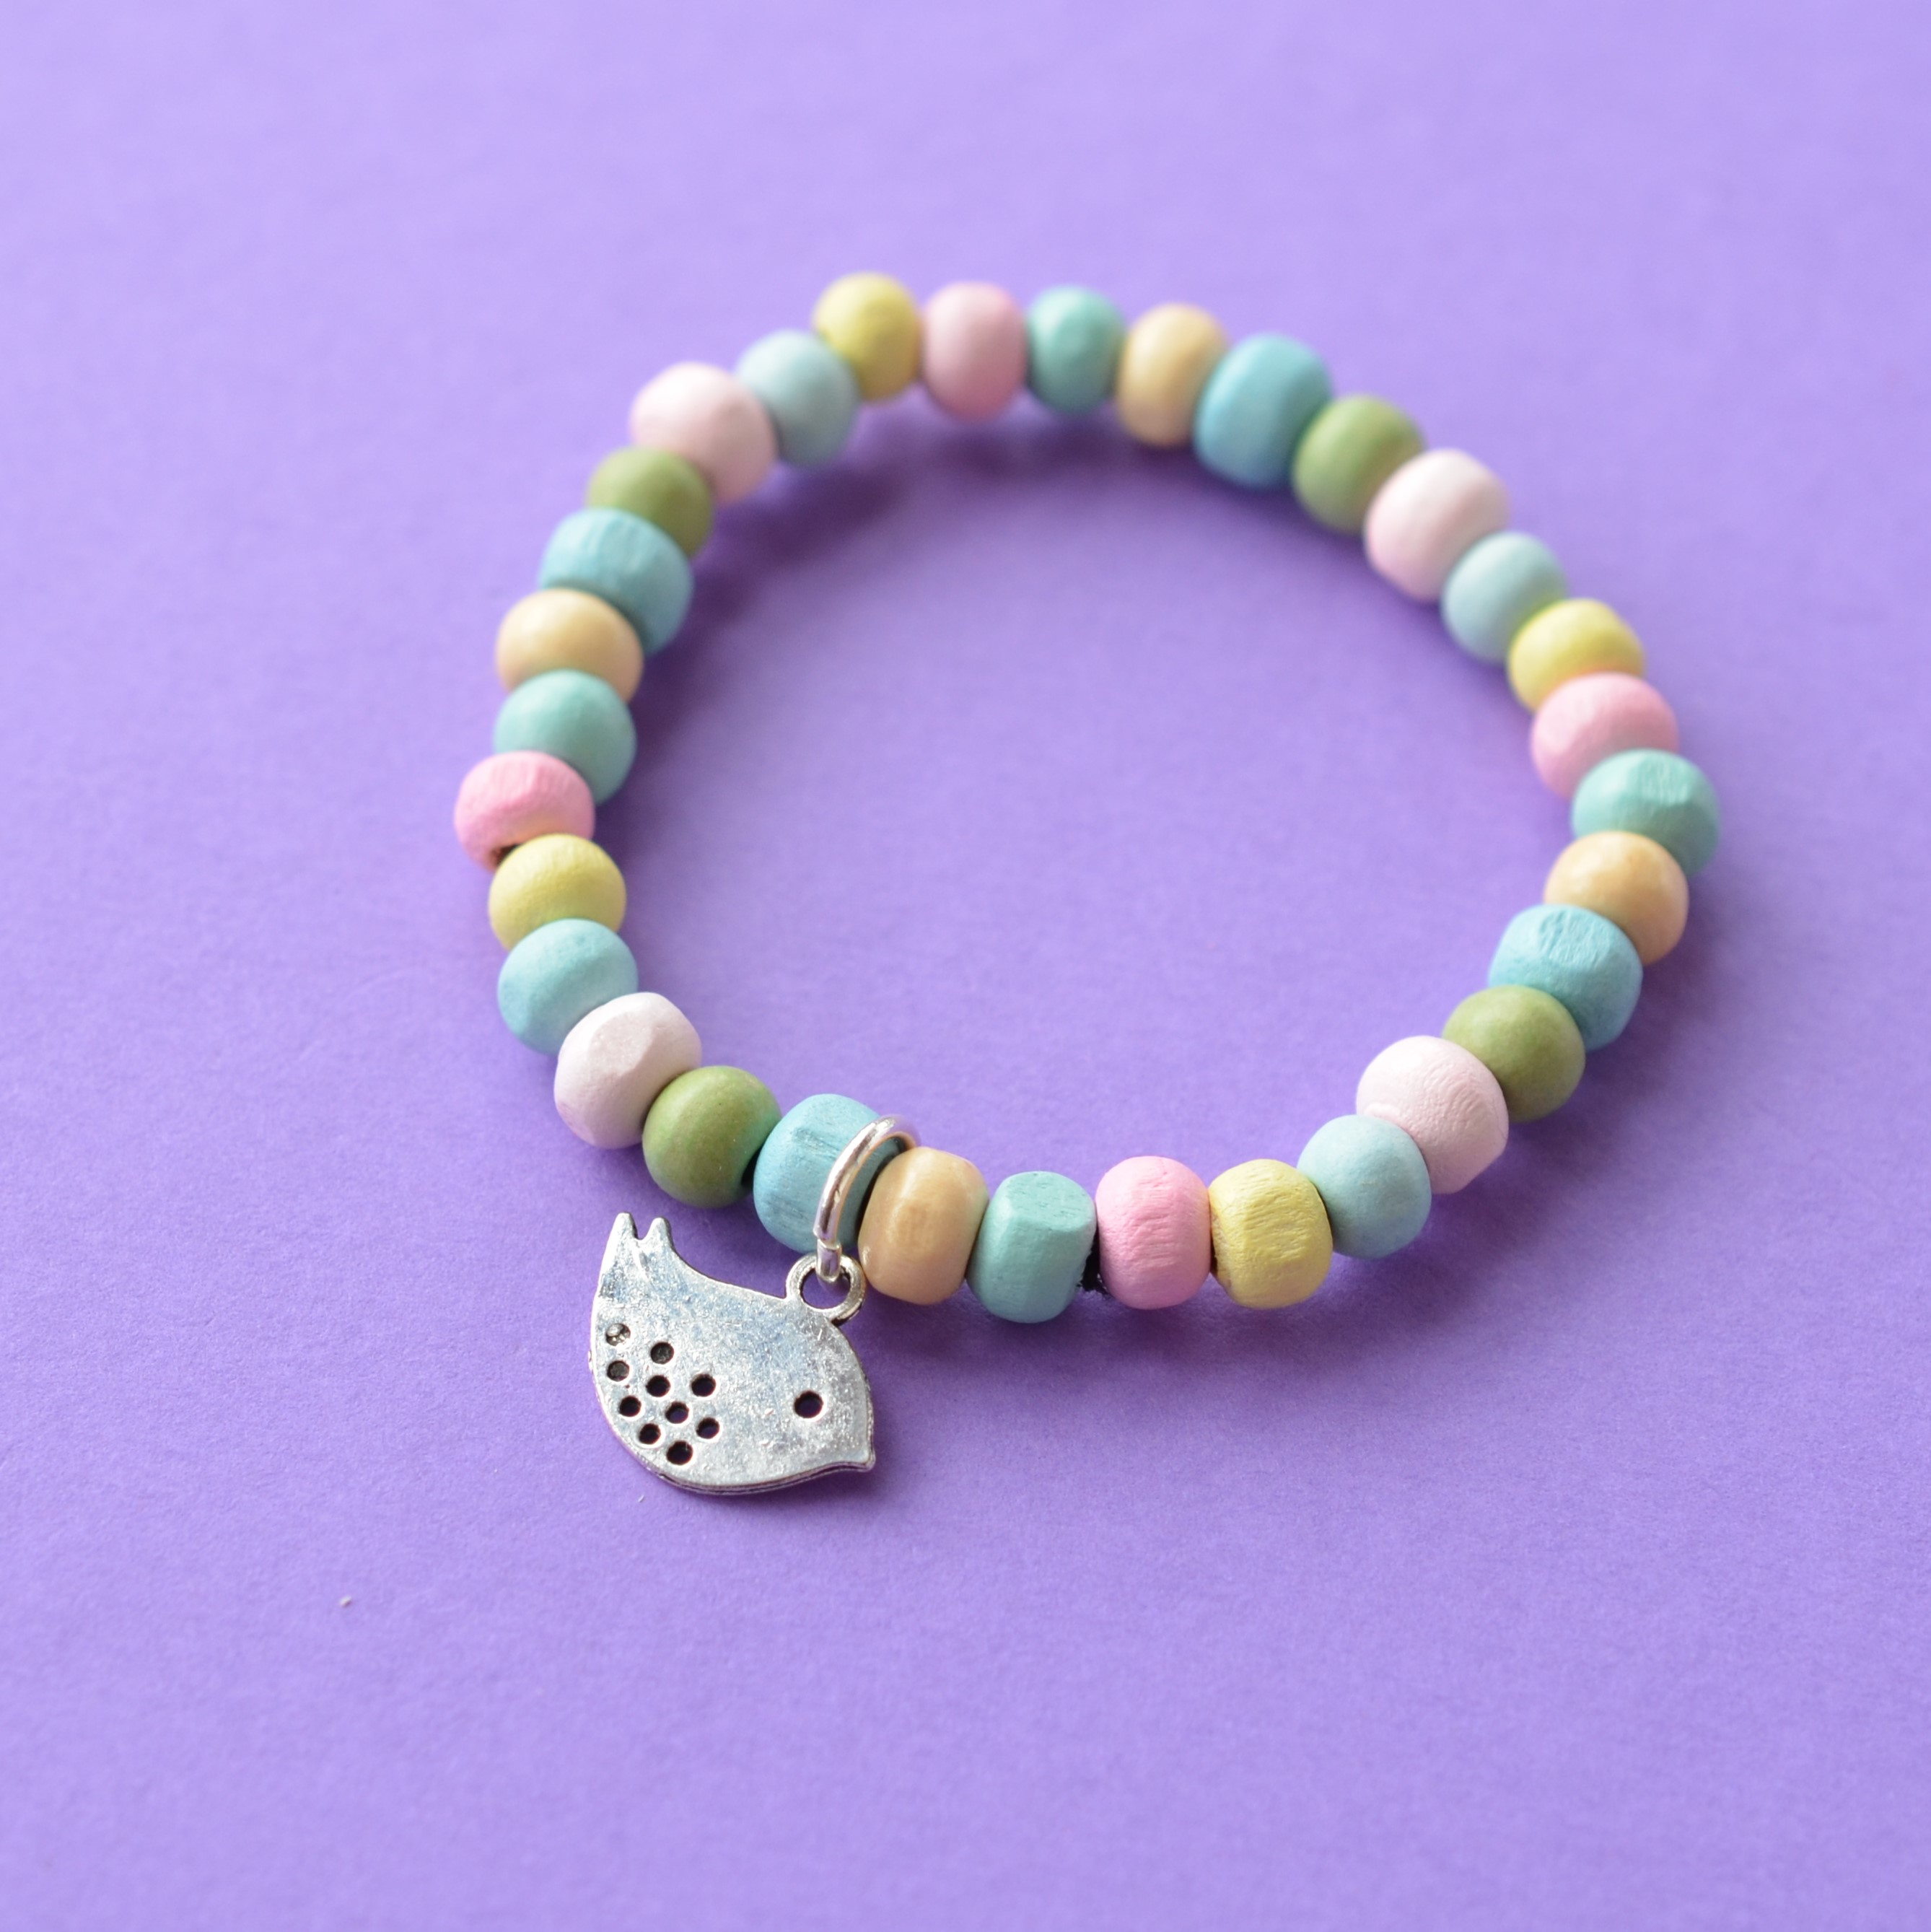 Bird Colourful Child's Wooden Bead Charm Bracelet